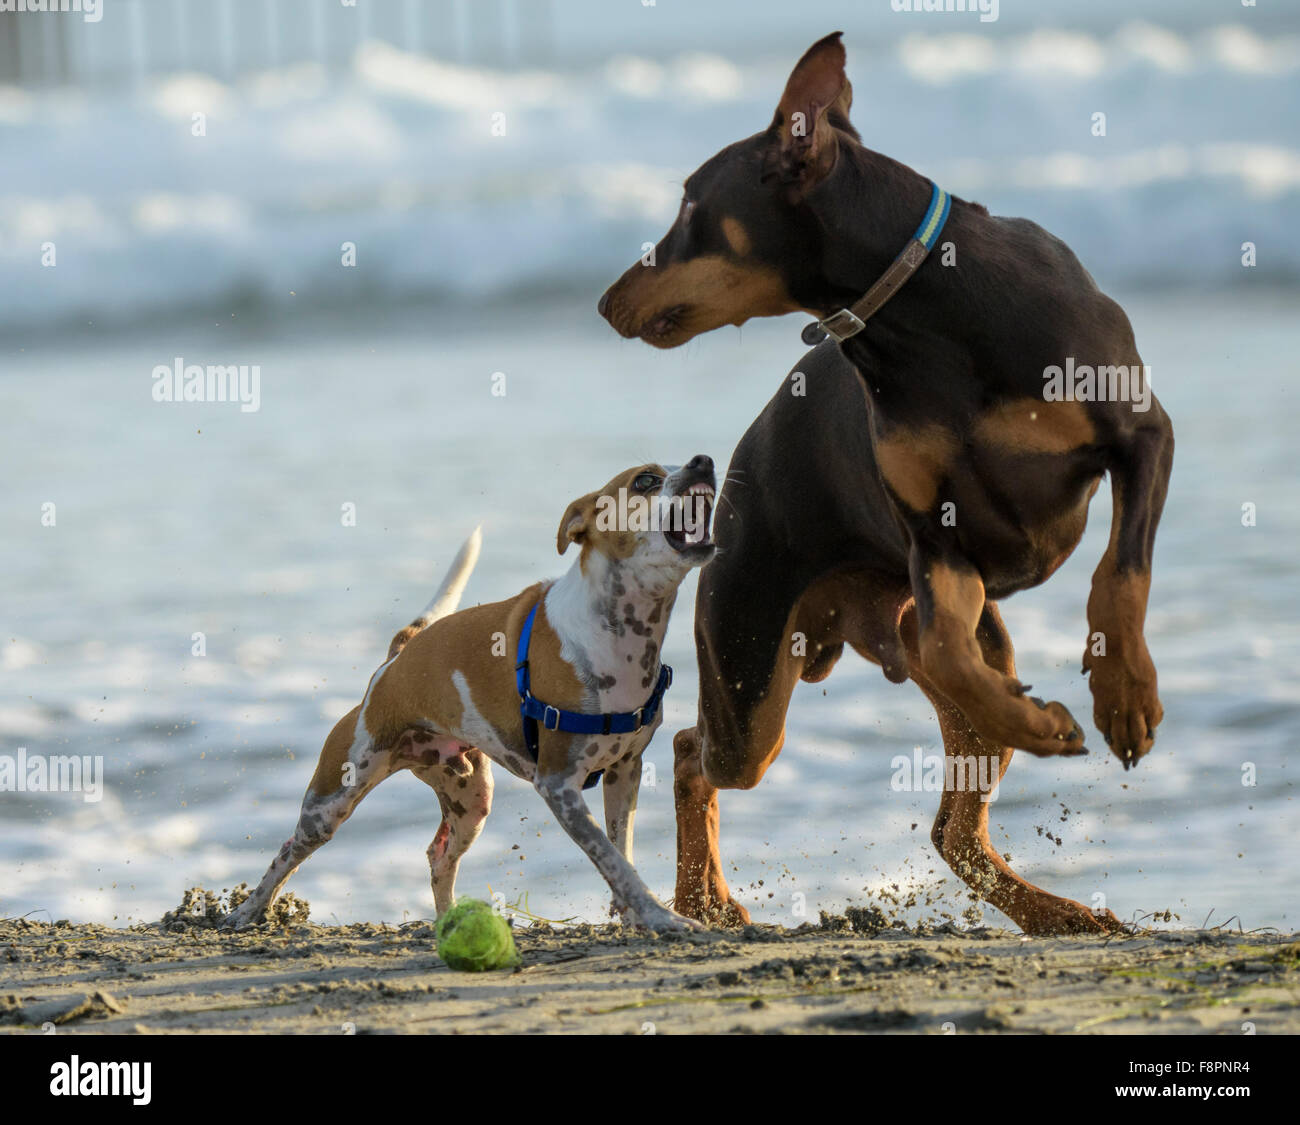 Terrier and Doberman dogs play, run and splash on Ocean Beach, CA shoreline - Stock Image